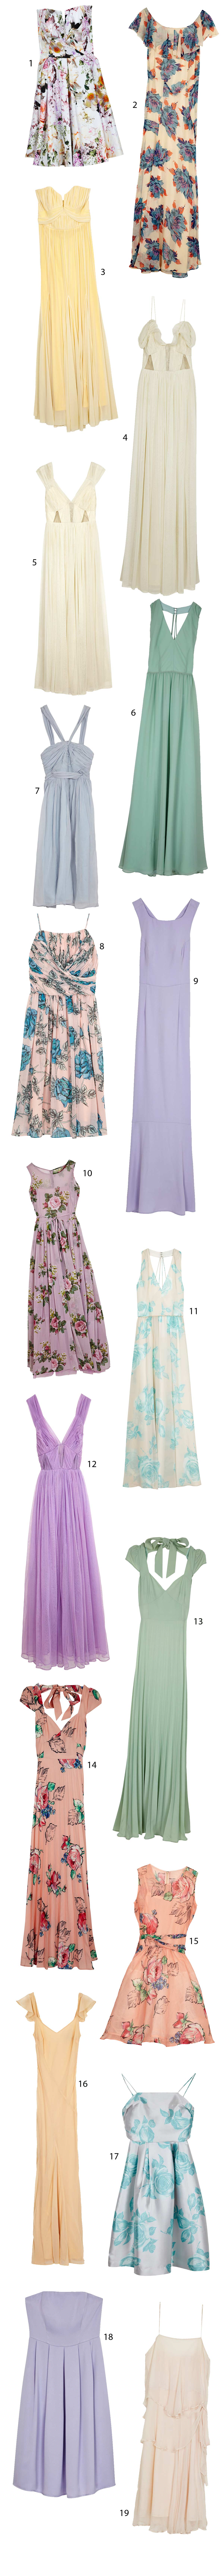 asos-bridesmaid-range